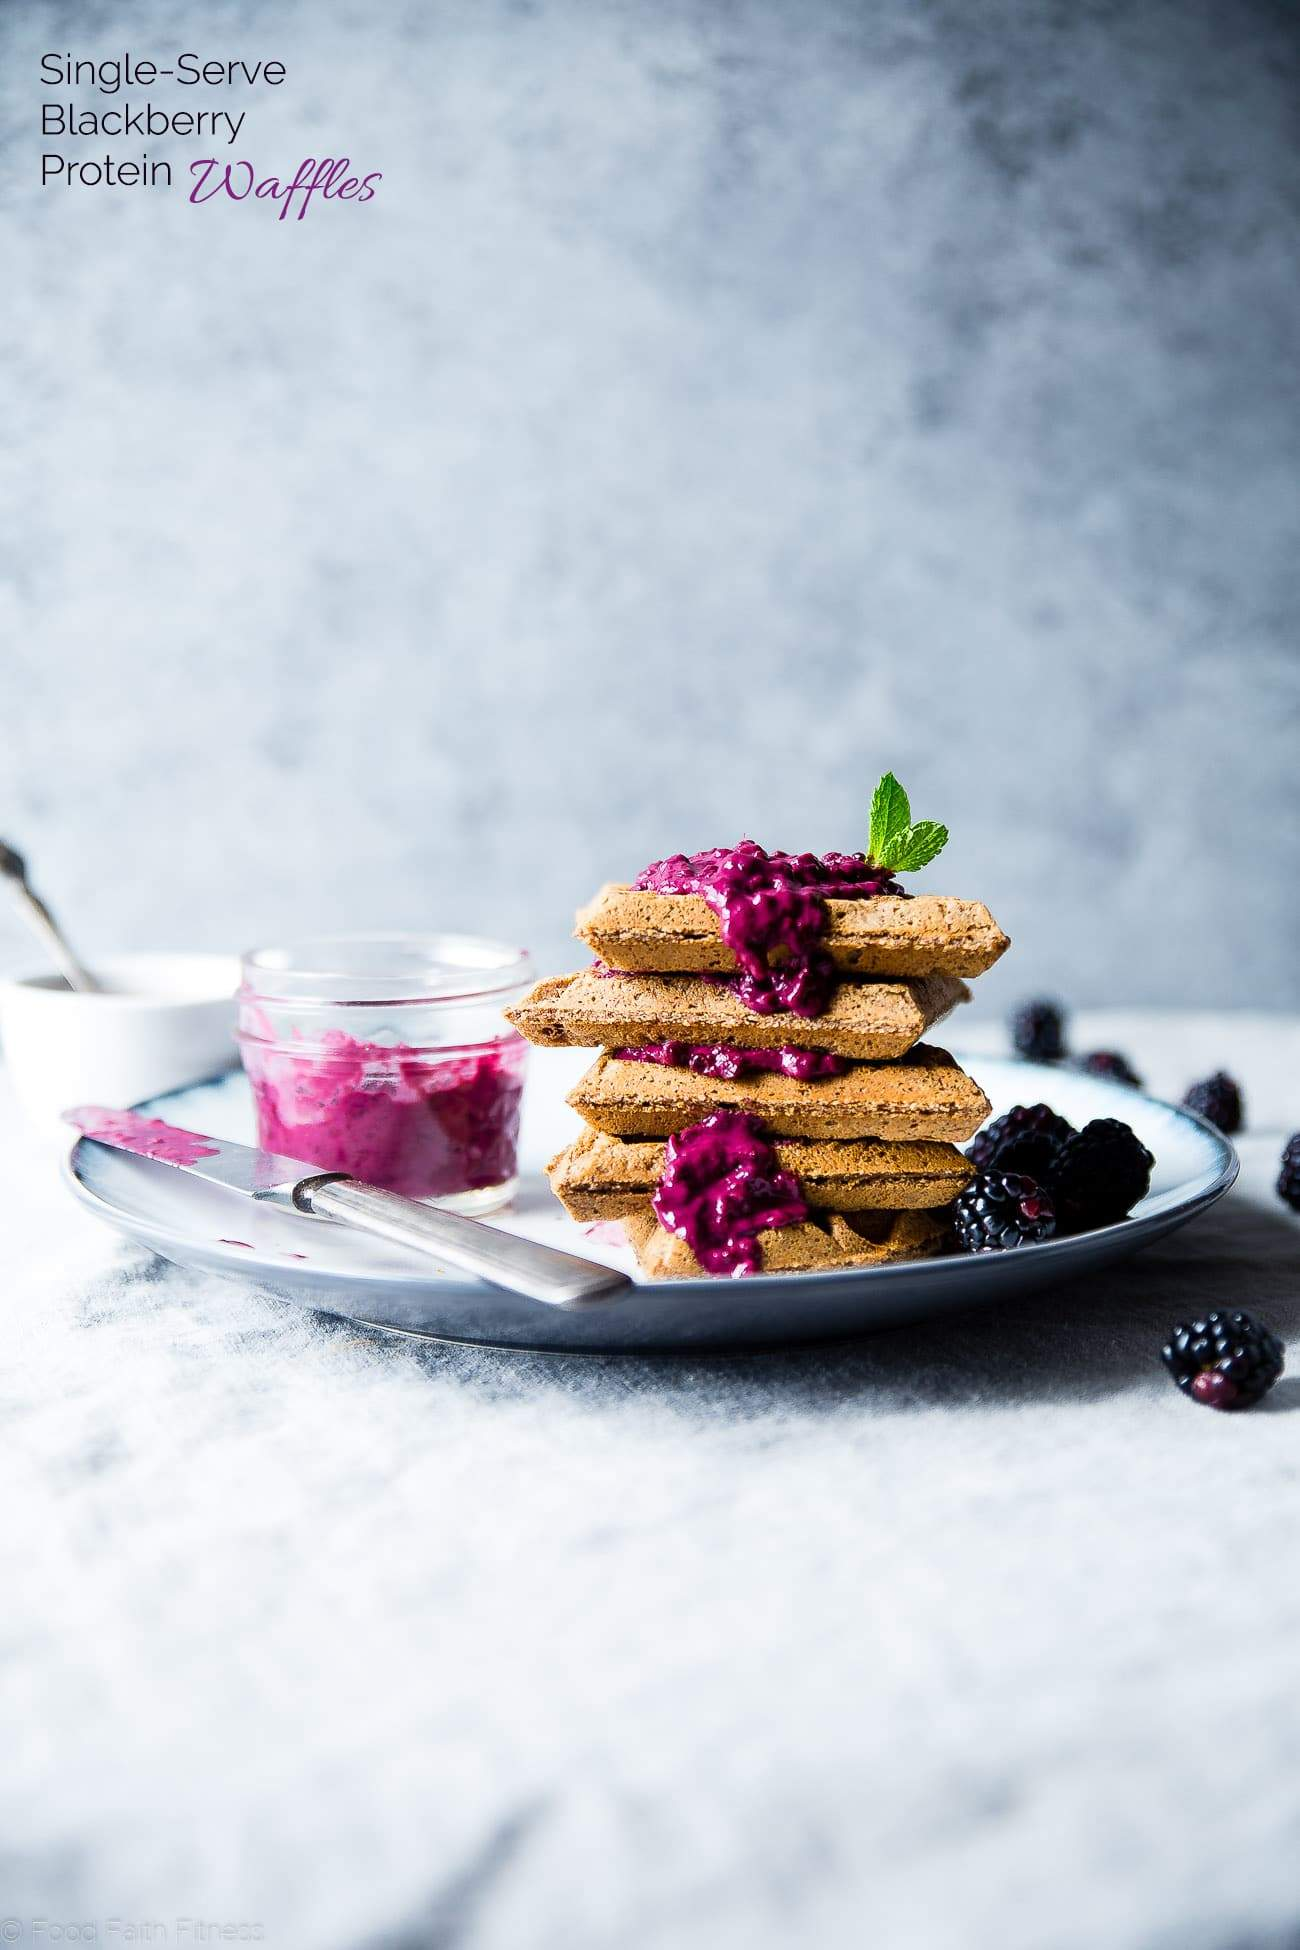 Single Serve Vegan Protein Waffles - These gluten free waffles are ready in only 10 minutes and are packed with healthy, plant-based protein! Top them with blackberry sauce for a delicious breakfast! | Foodfaithfitness.com | @FoodFaithFit